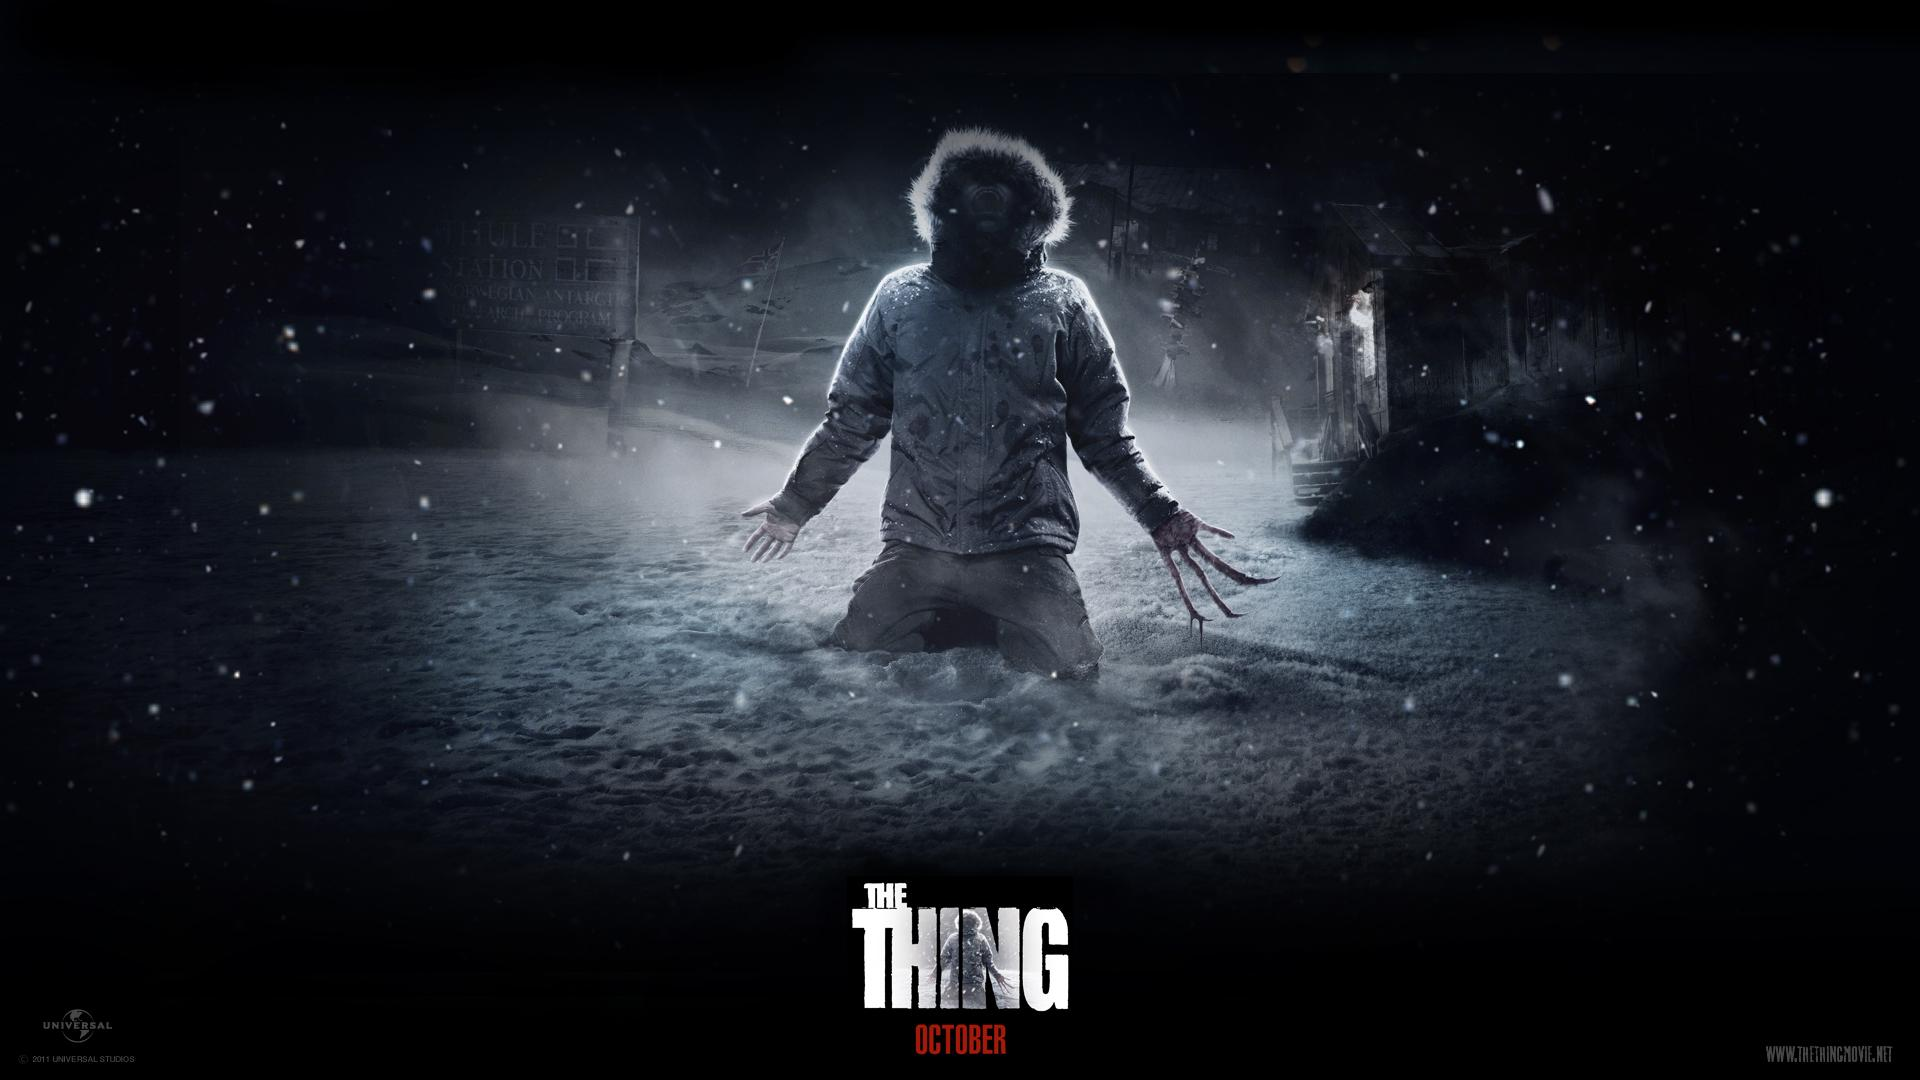 super spooky listicles the thing